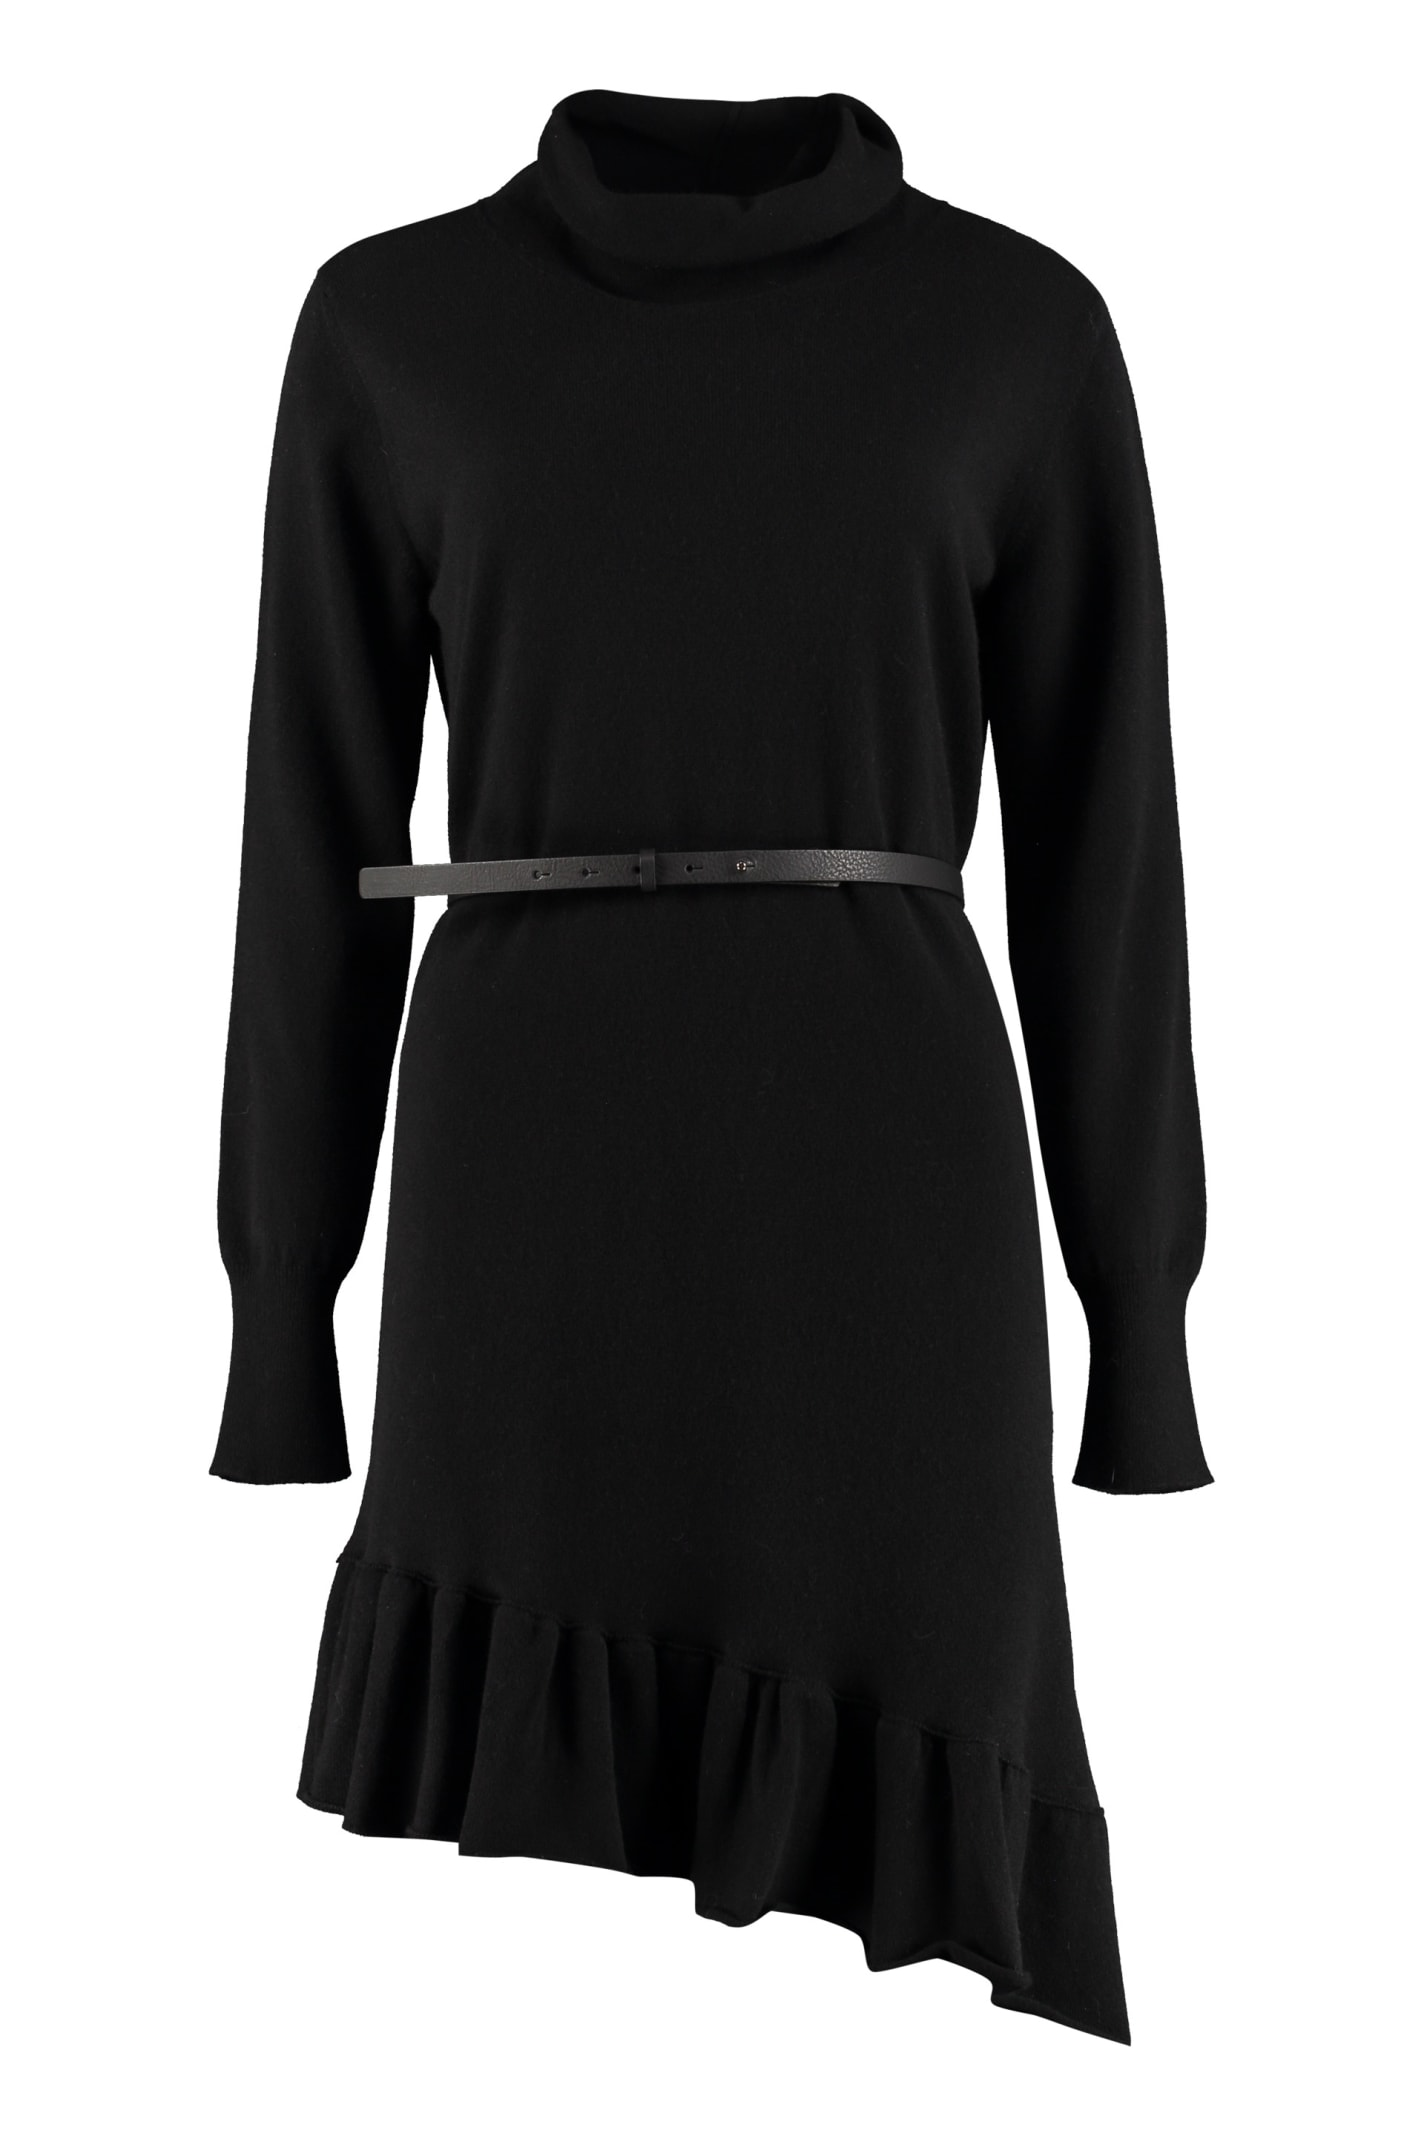 Buy Fabiana Filippi Belted Knit Dress online, shop Fabiana Filippi with free shipping